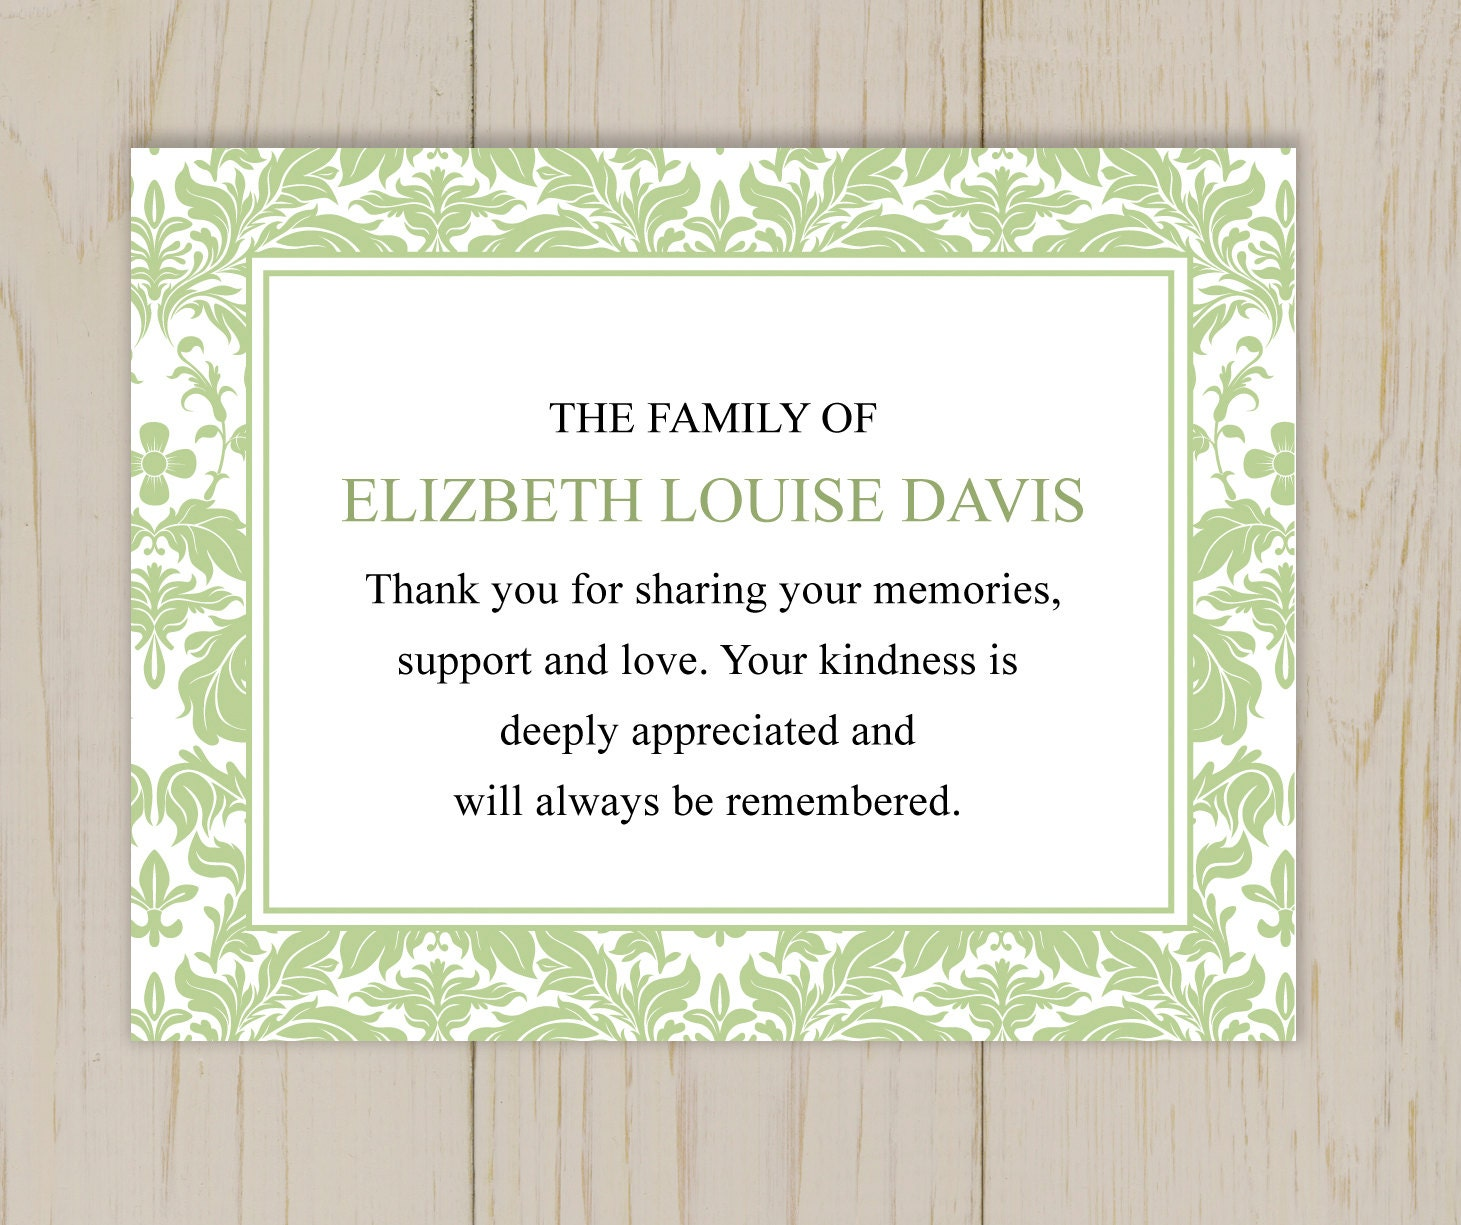 thank you cards for funerals